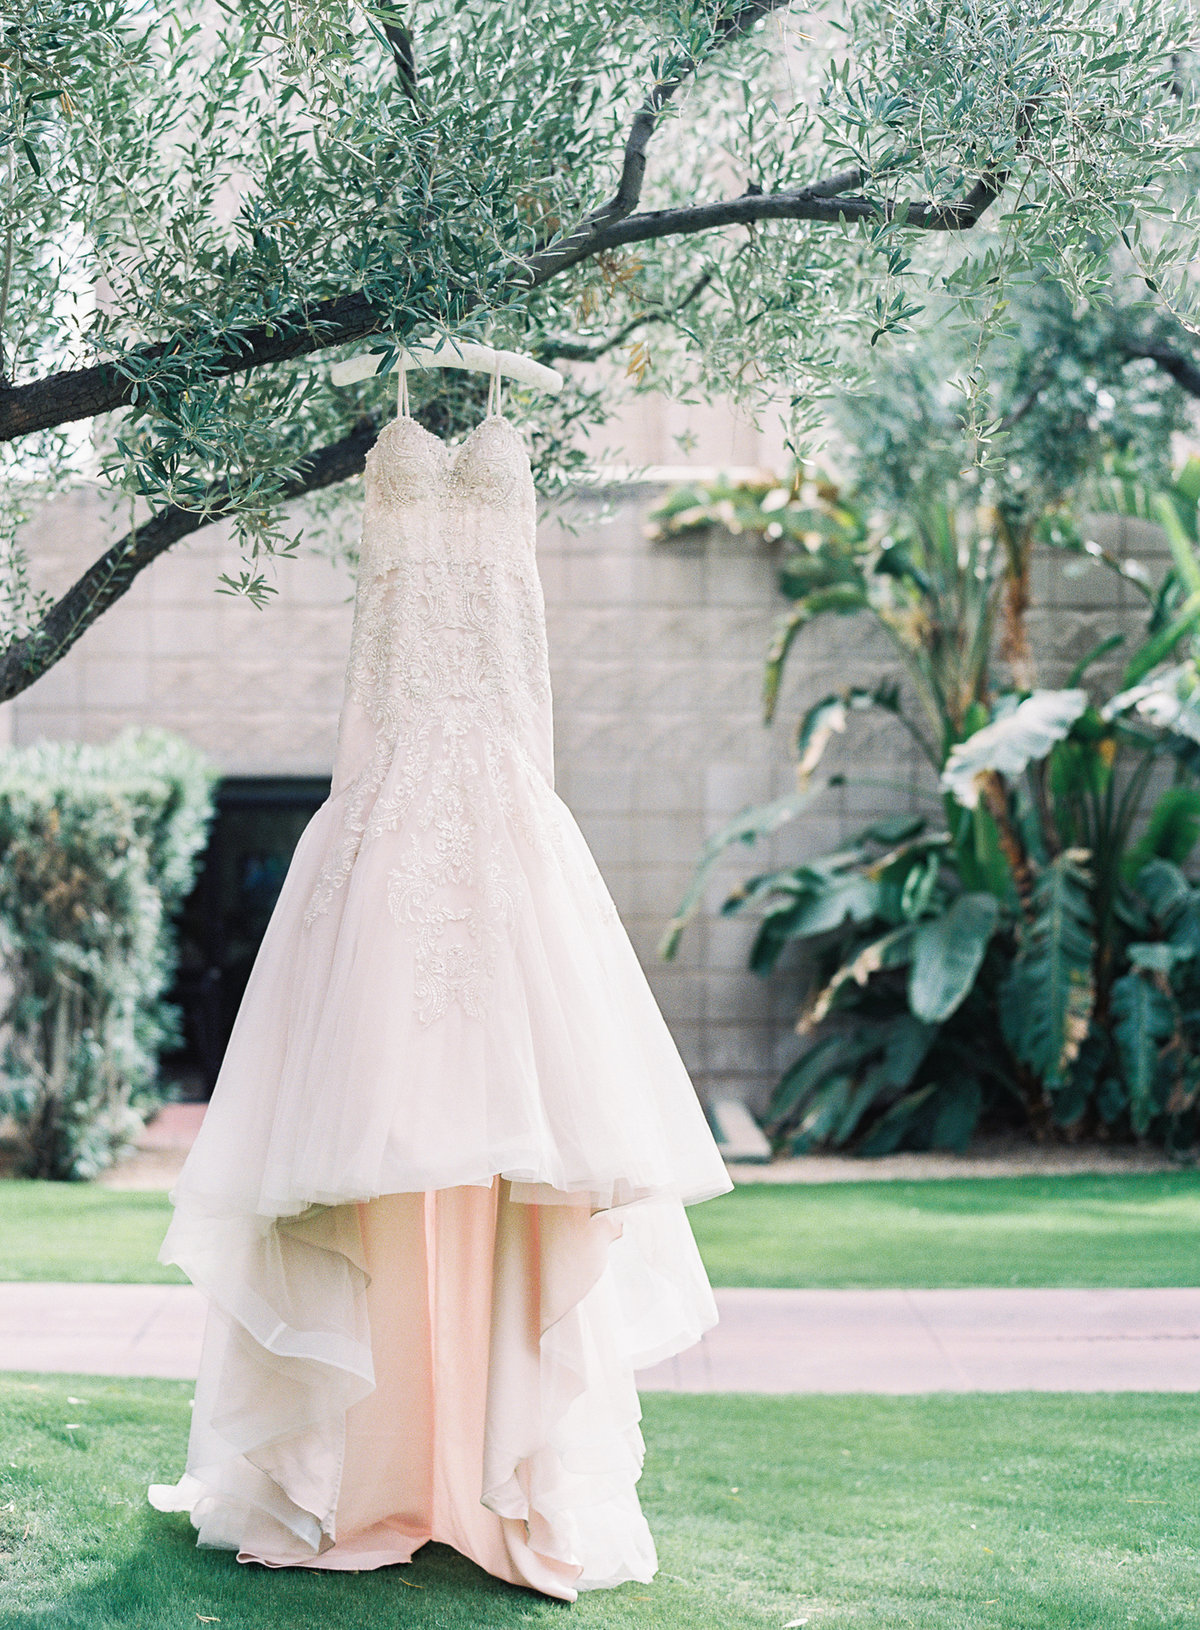 Arizona Biltmore Wedding - Mary Claire Photography-35